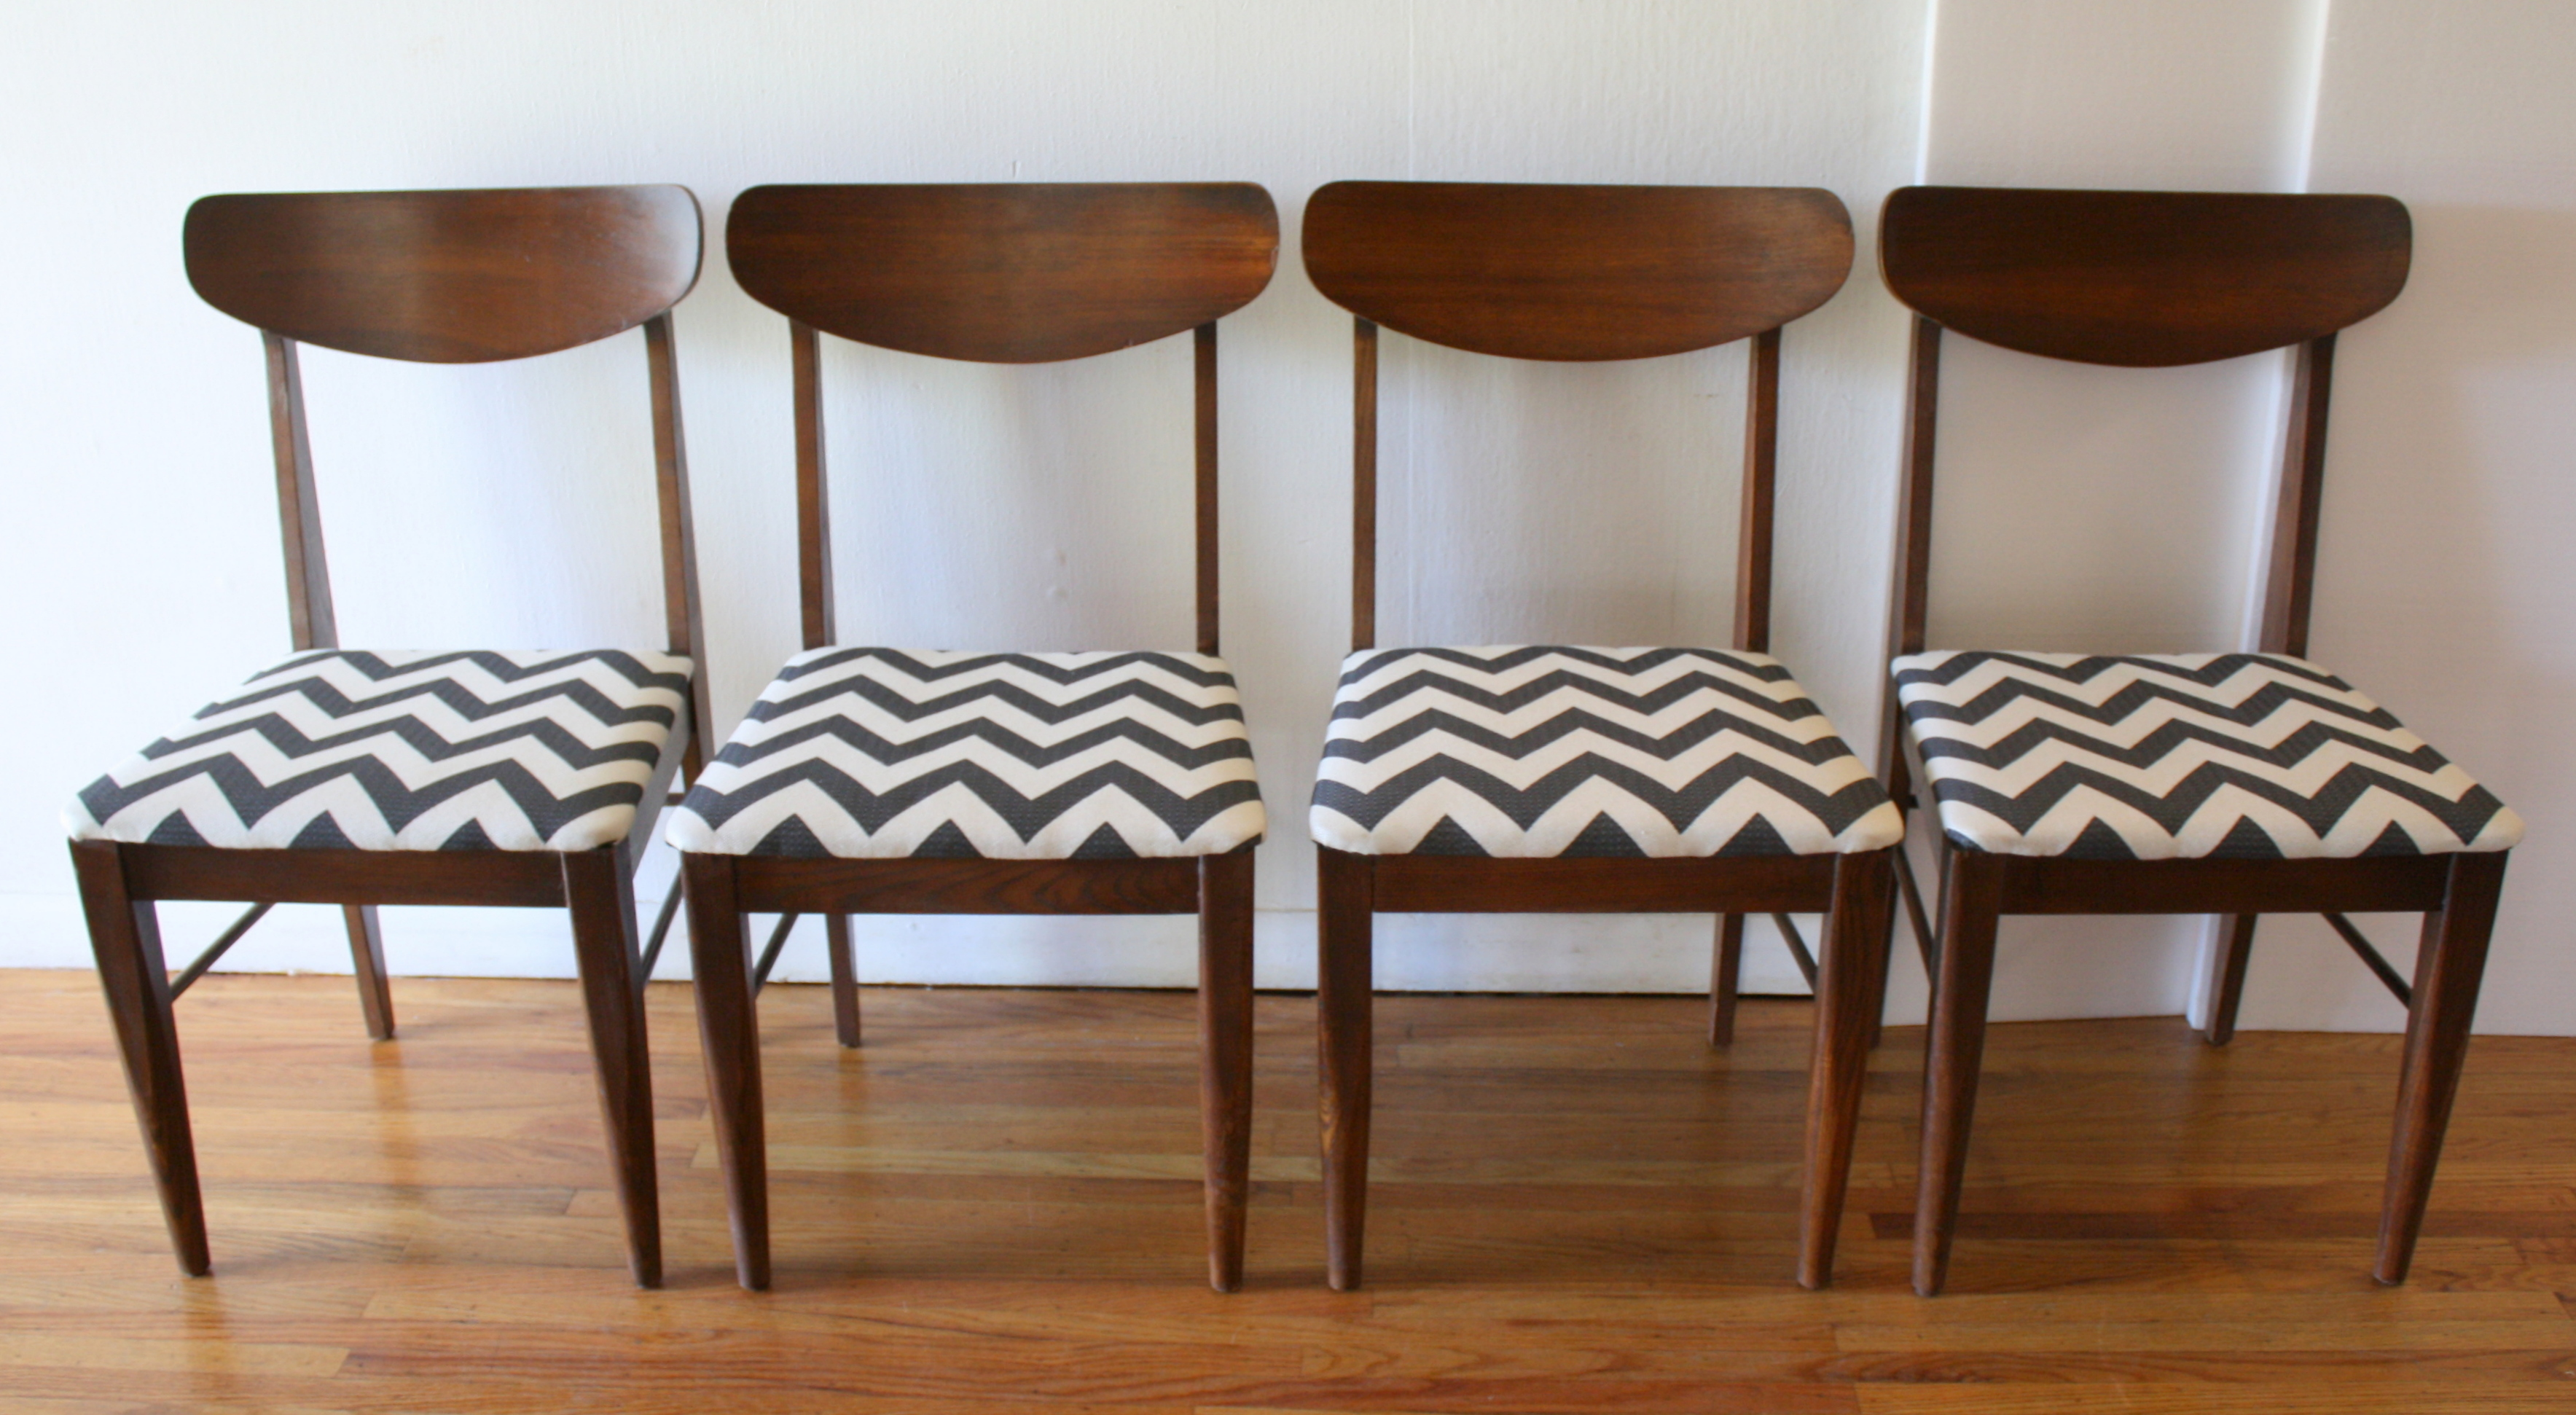 Mid century modern dining chair sets picked vintage for Retro modern dining chairs